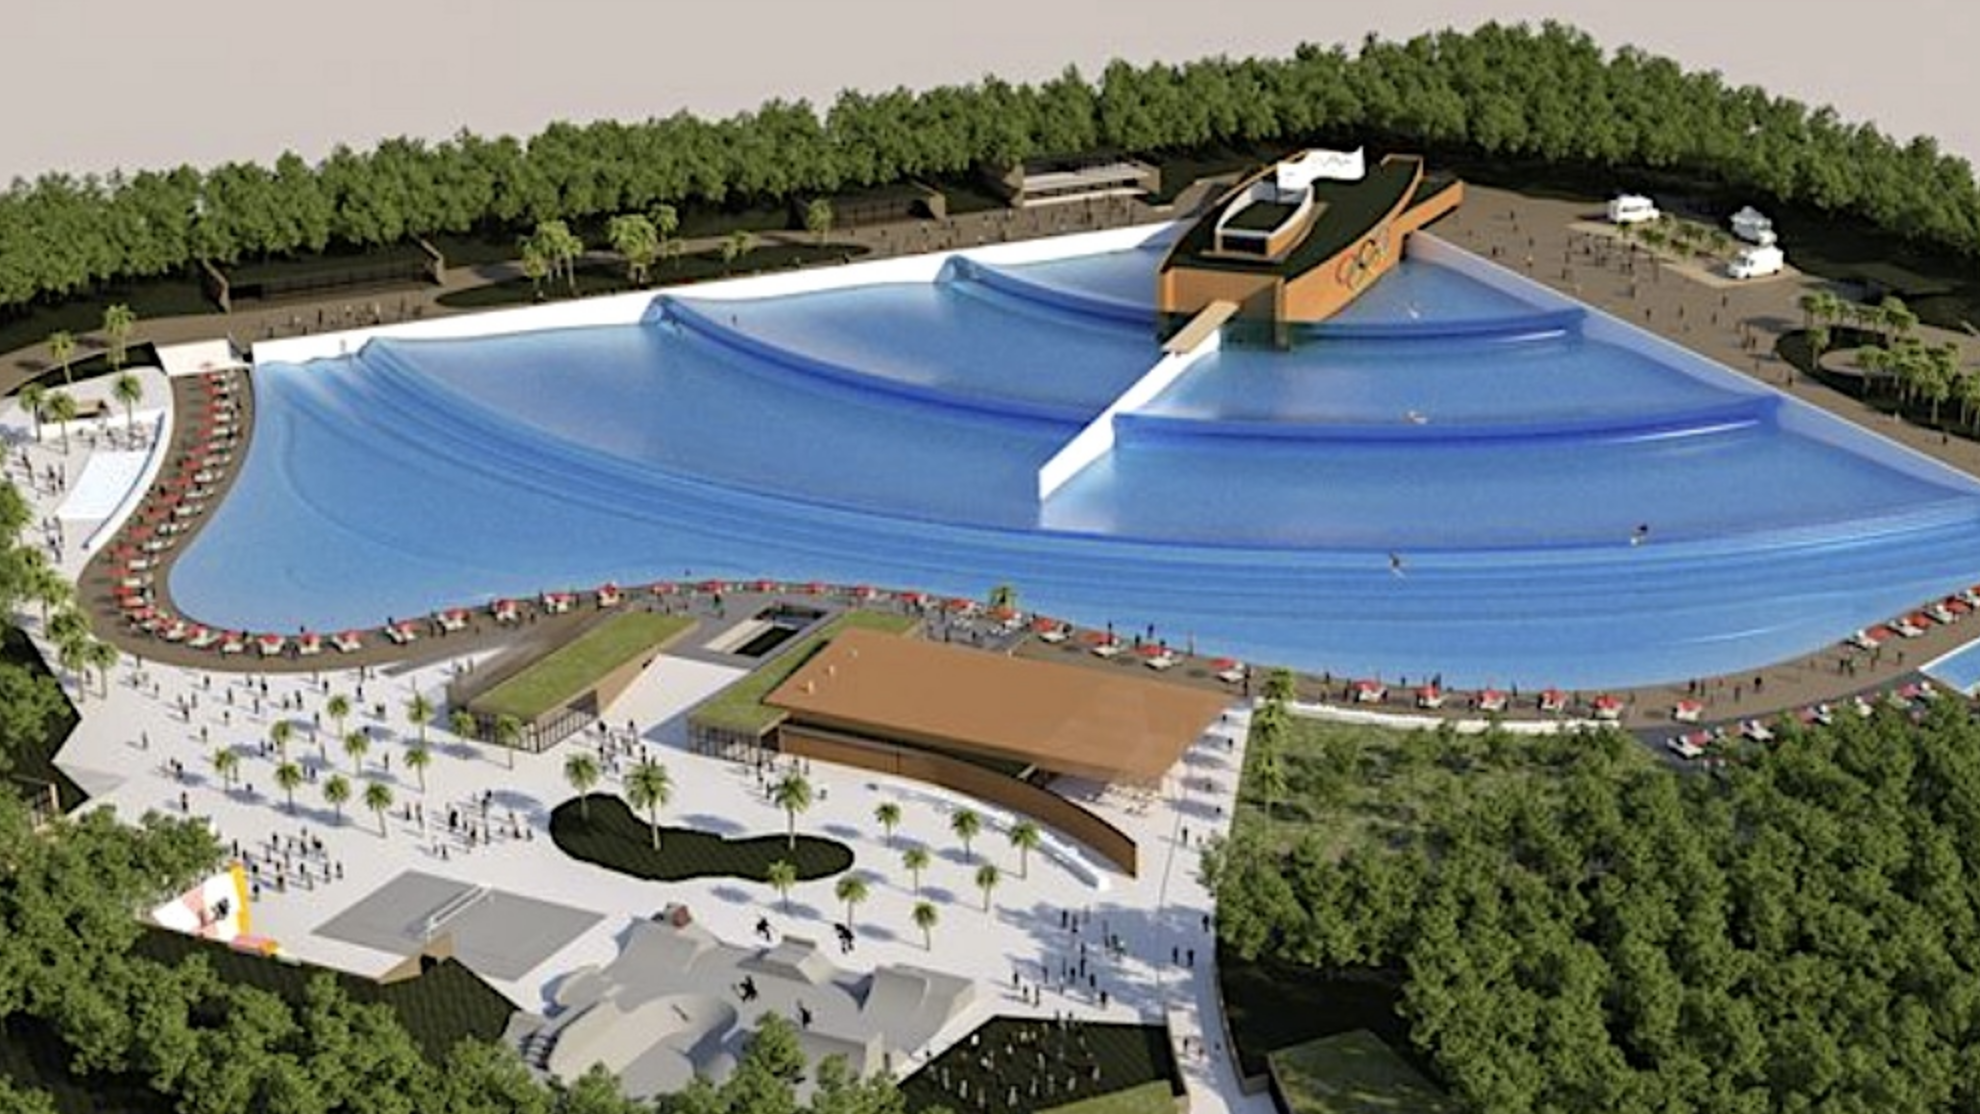 France to kick off new pool construction near Hossegor